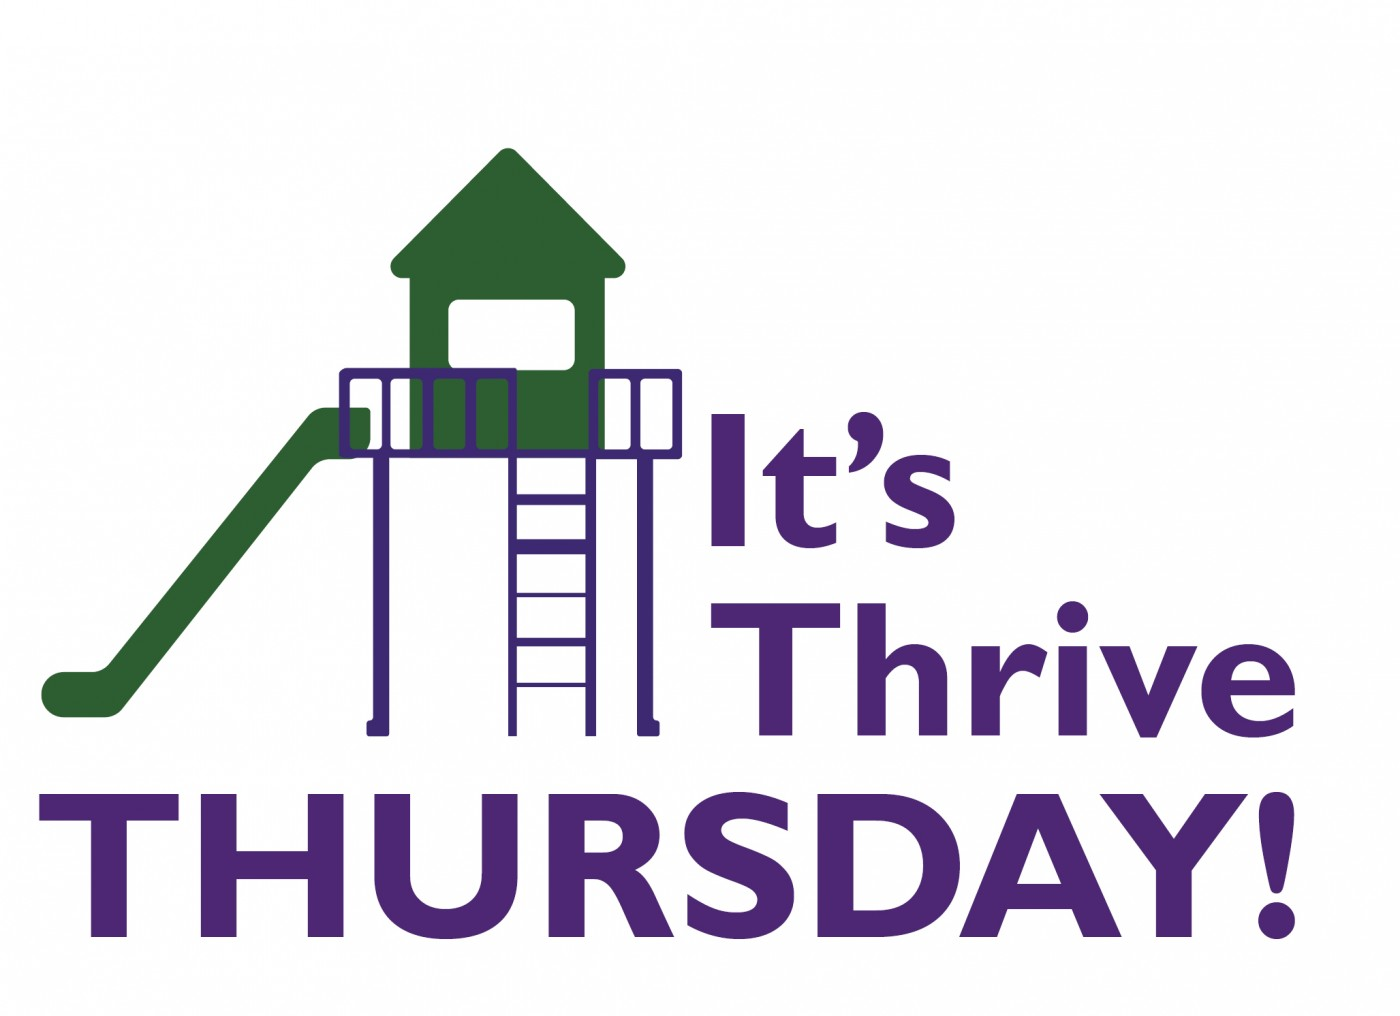 3 THRIVE THURSDAY